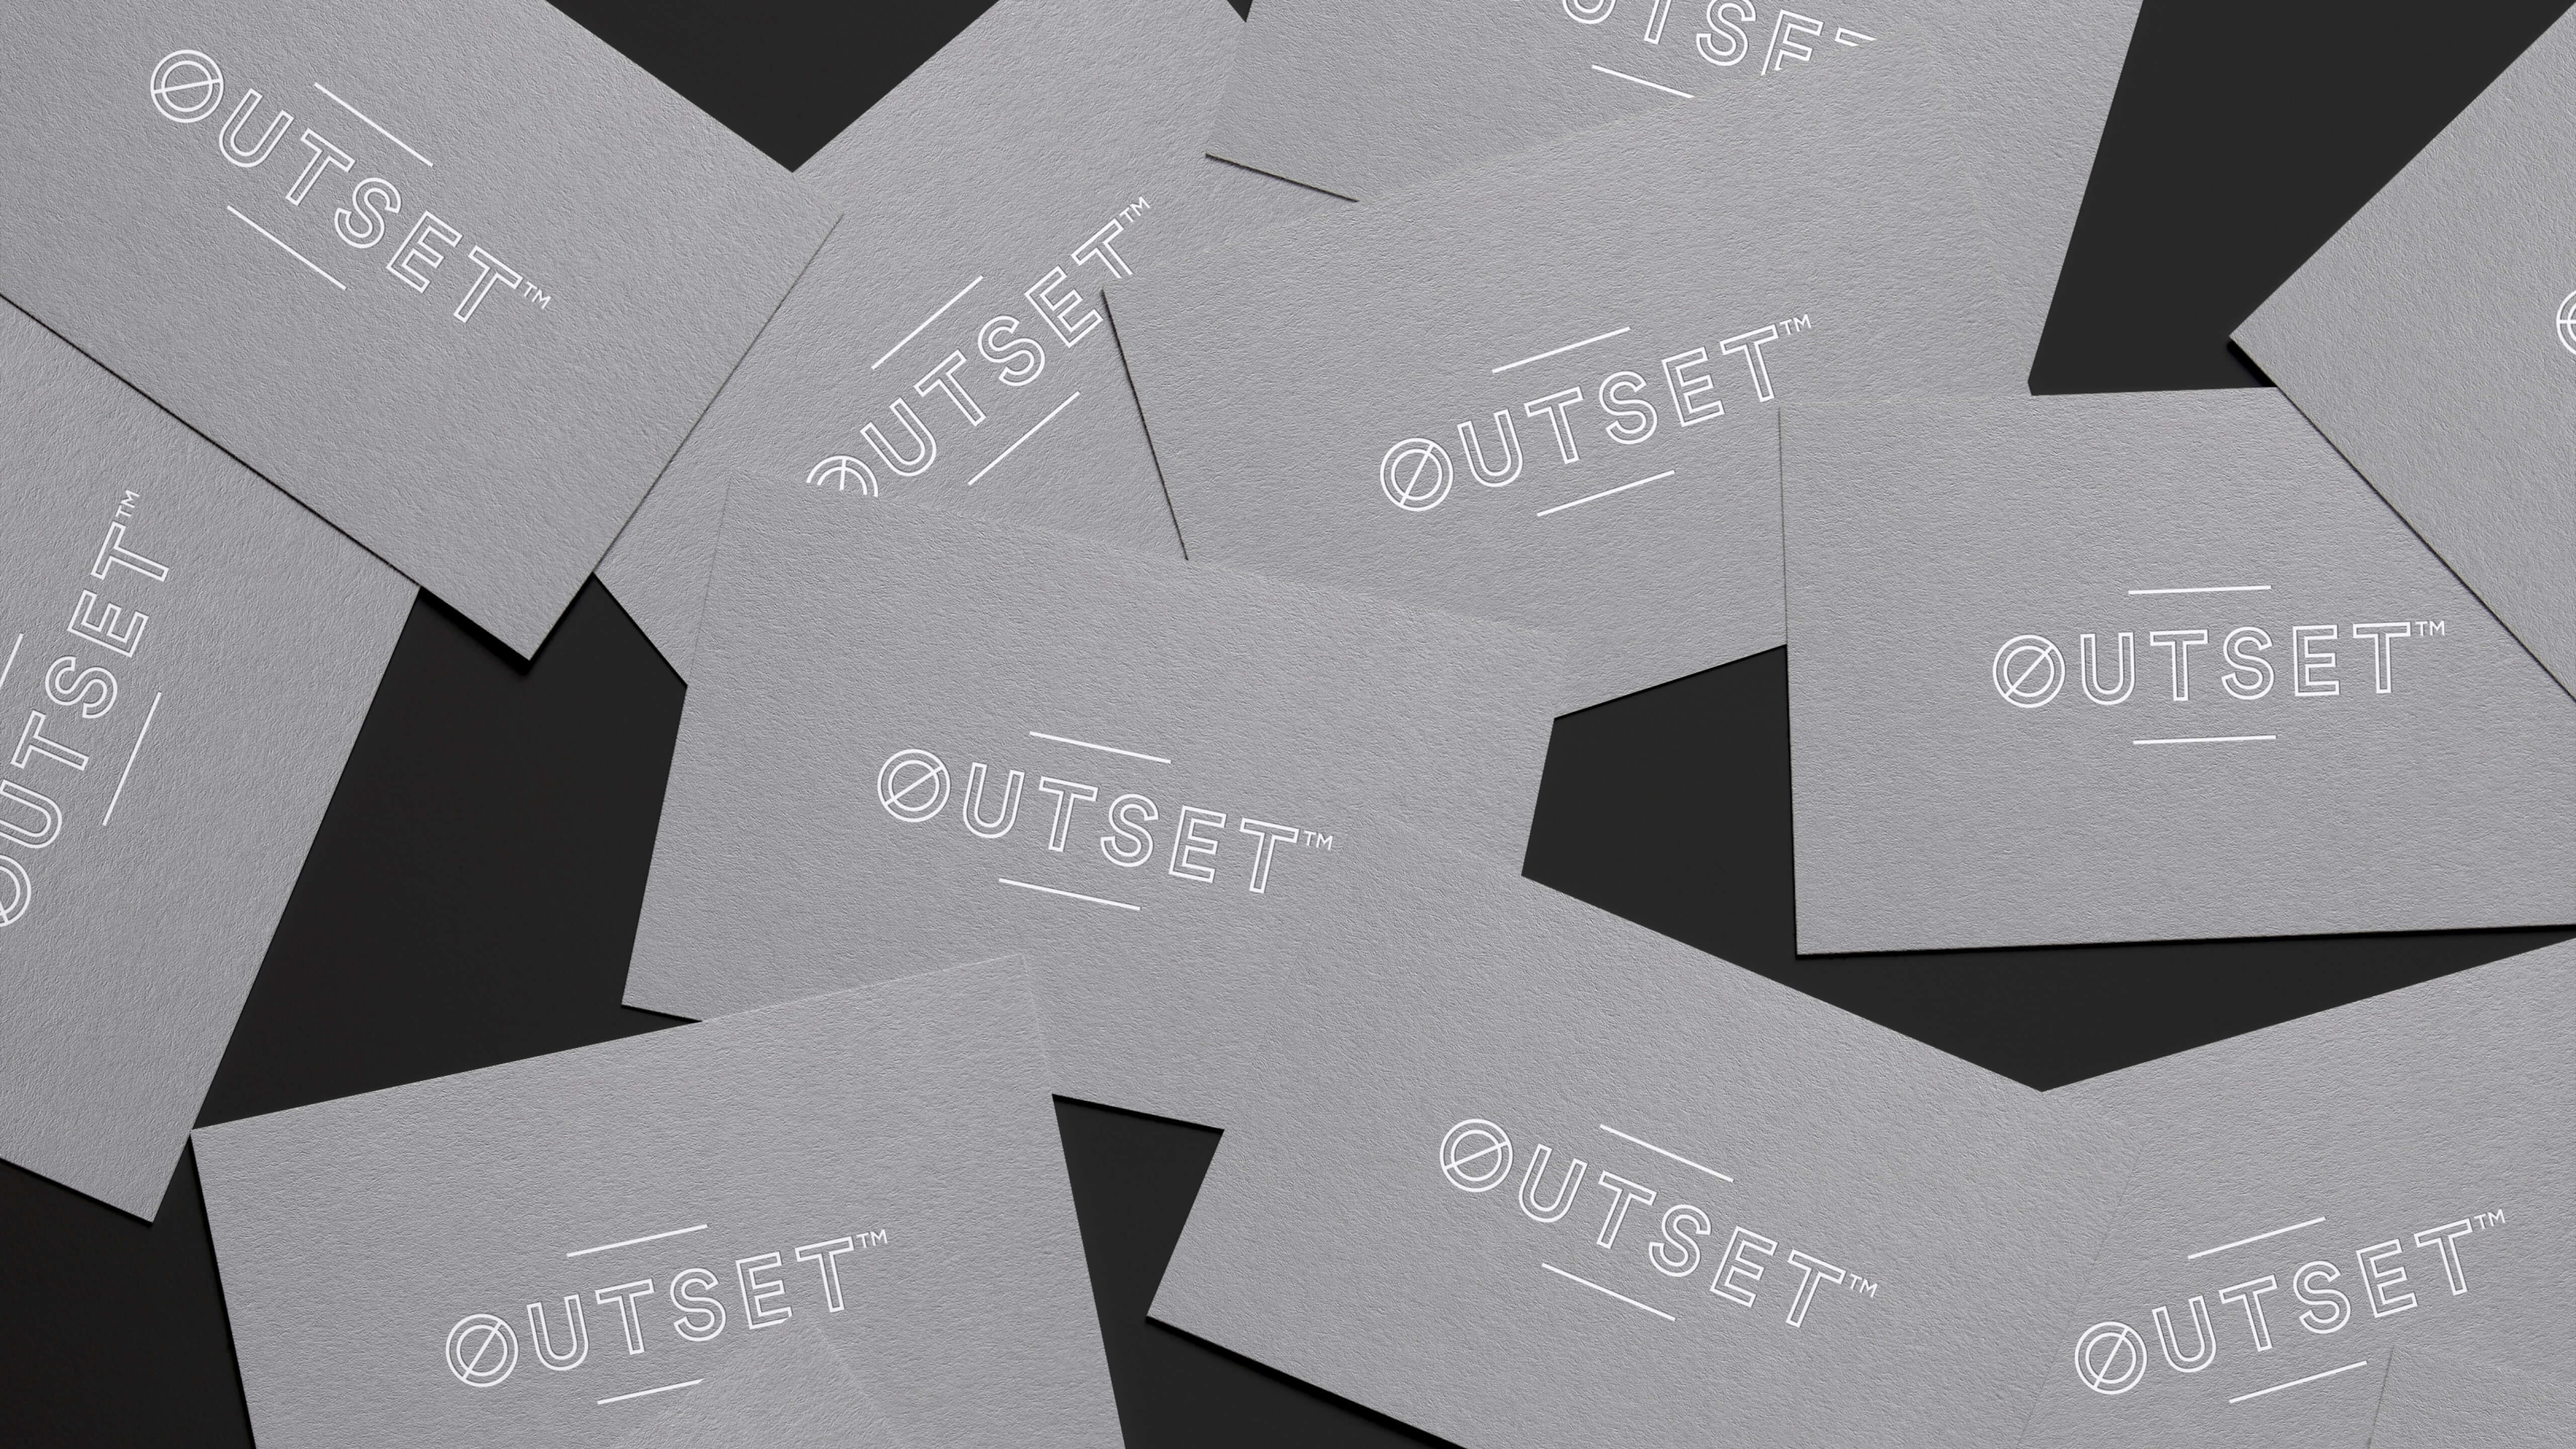 Outset-H3